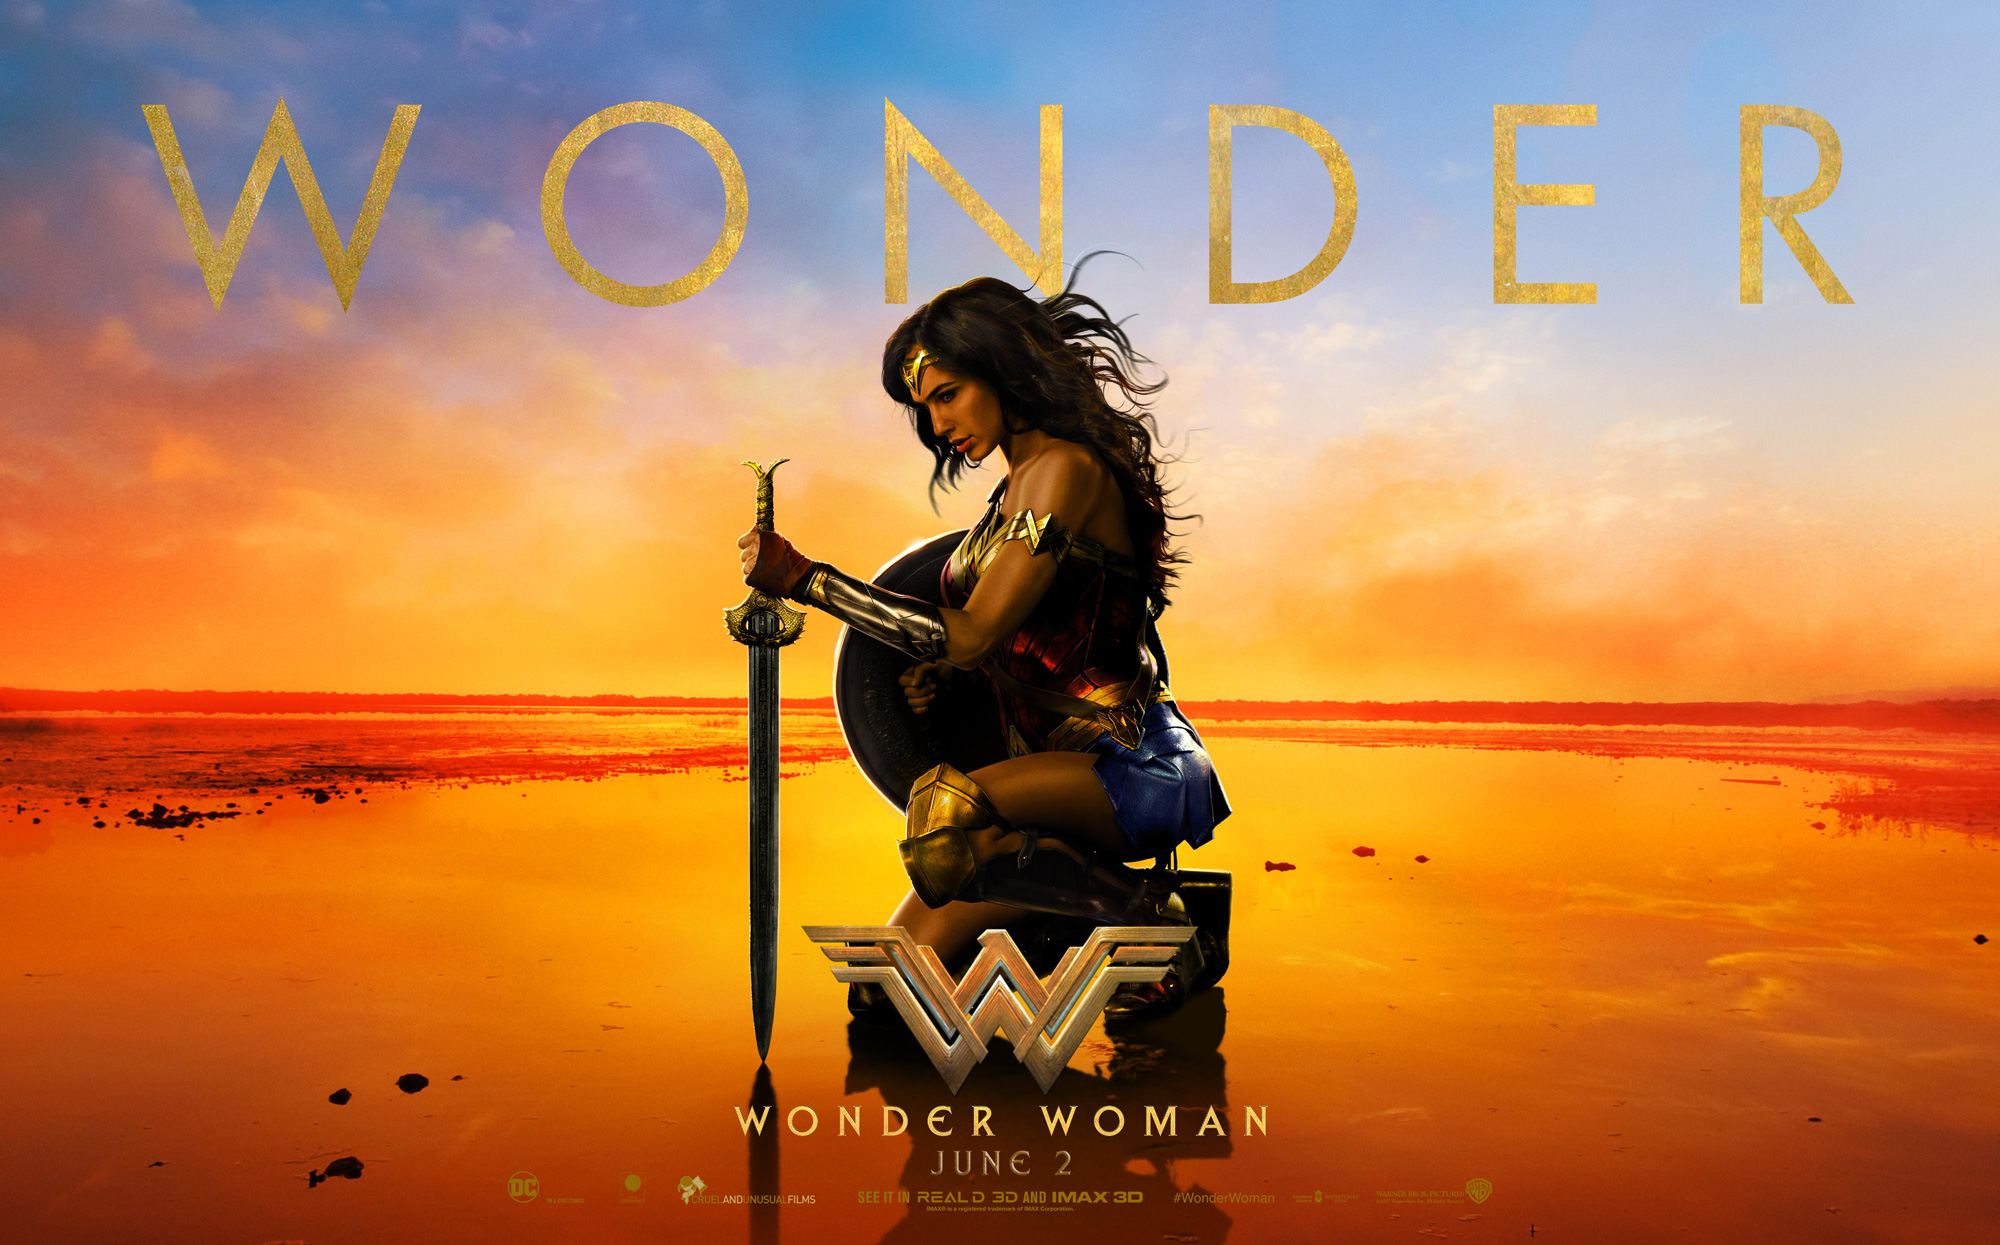 Episode 048: Wonder Woman – A Film Discussion with Mitch Birks & Martin Daniel